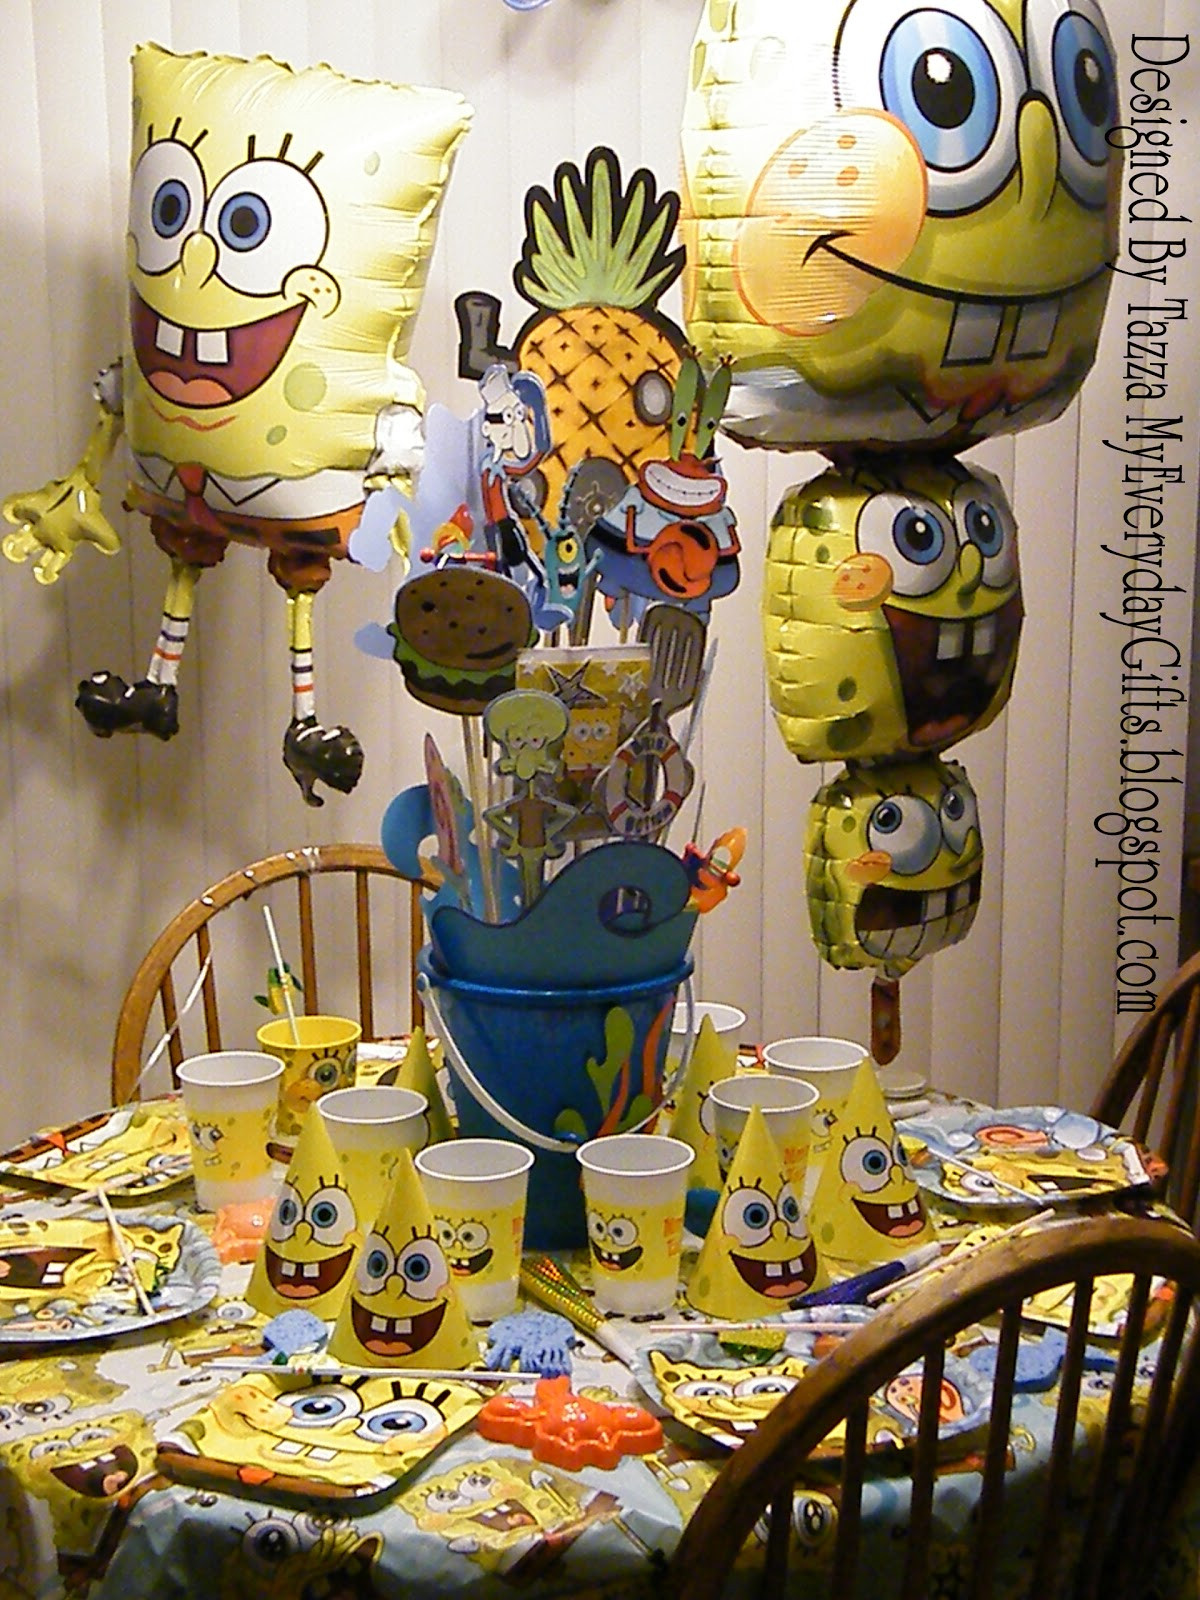 Best ideas about Spongebob Birthday Decorations . Save or Pin My Everyday Gifts Spongebob Birthday Party Cricut Now.